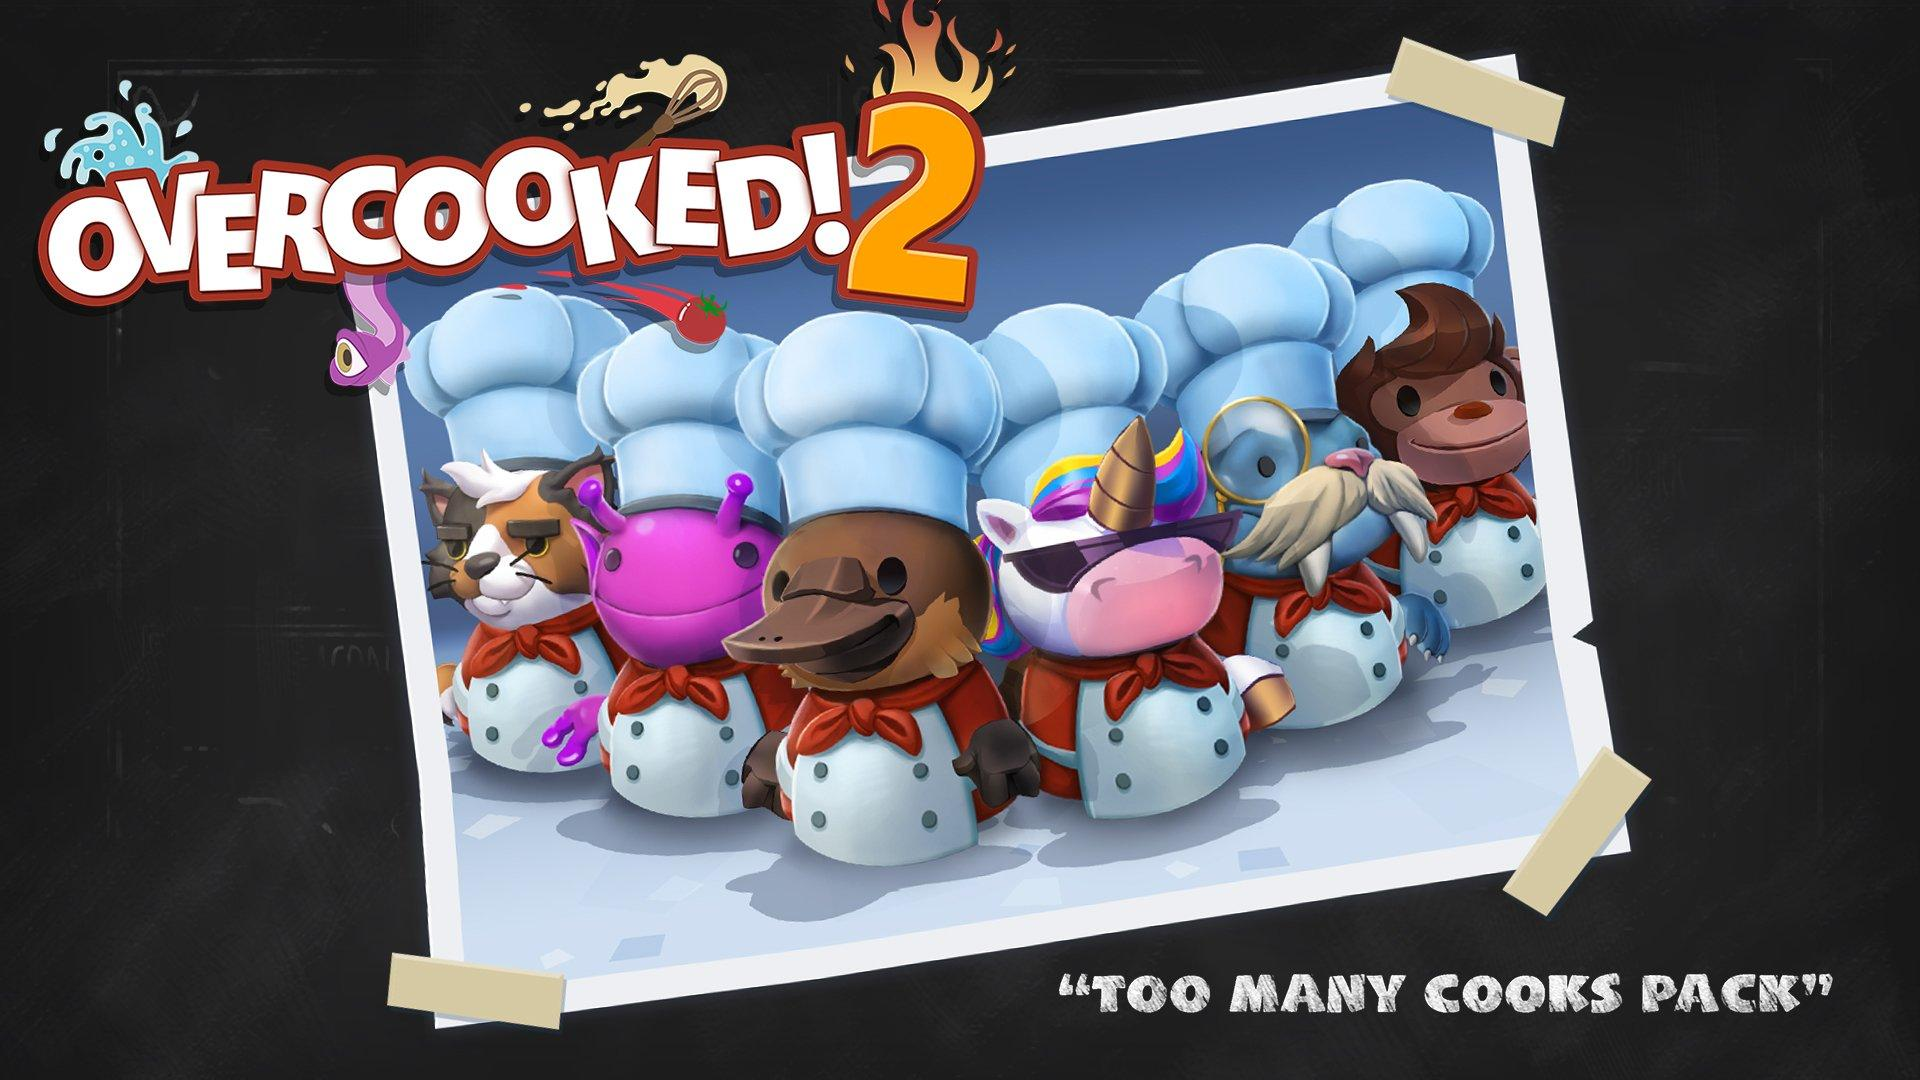 Overcooked! 2:Too Many Cooks Pack   Nintendo Switch   GameStop